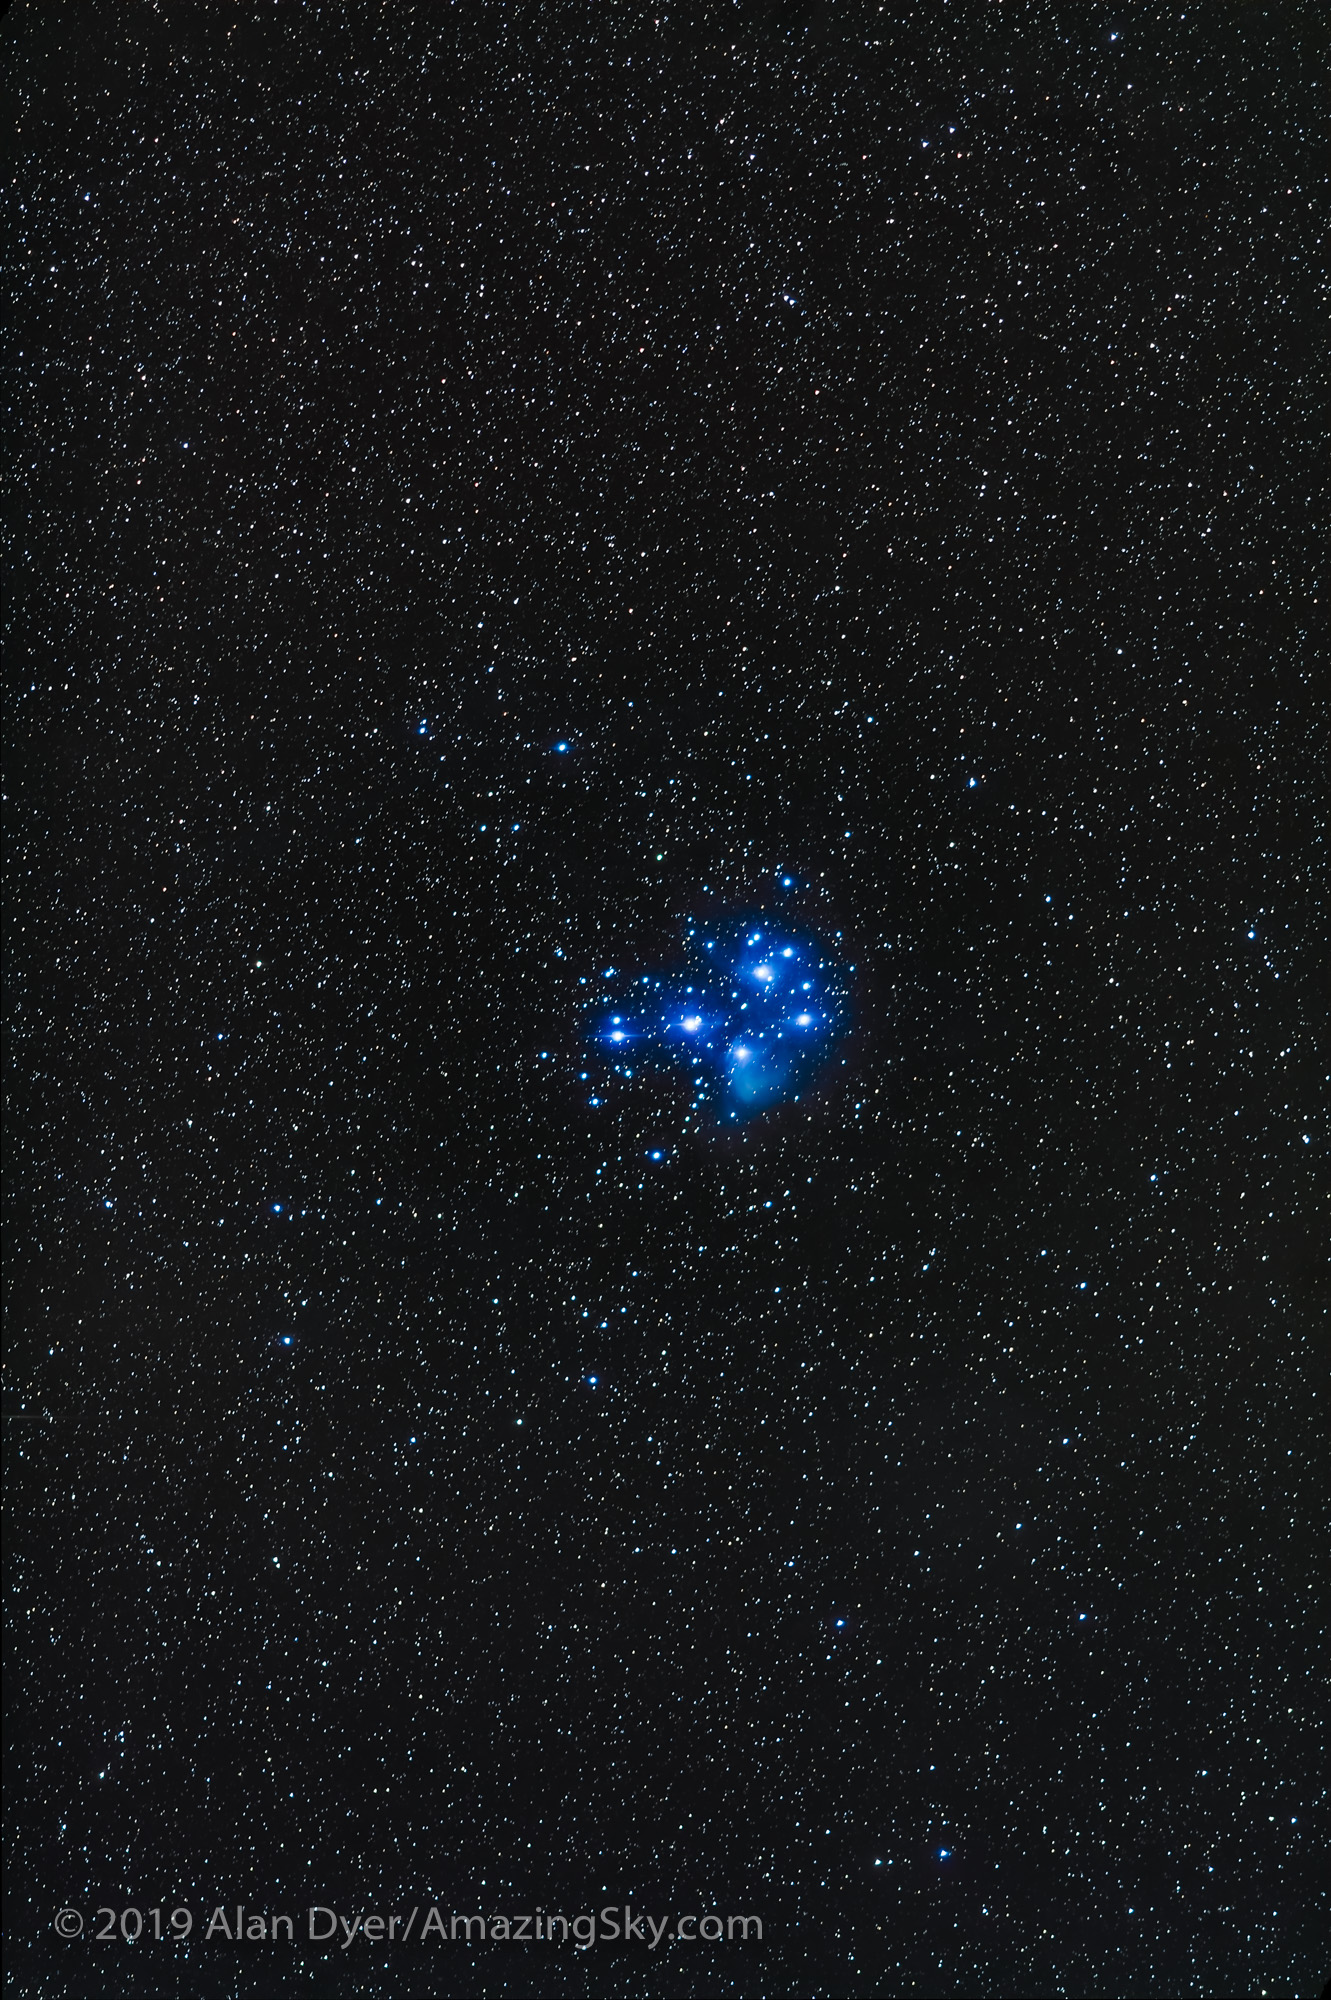 Pleiades M45 with 200mm Lens